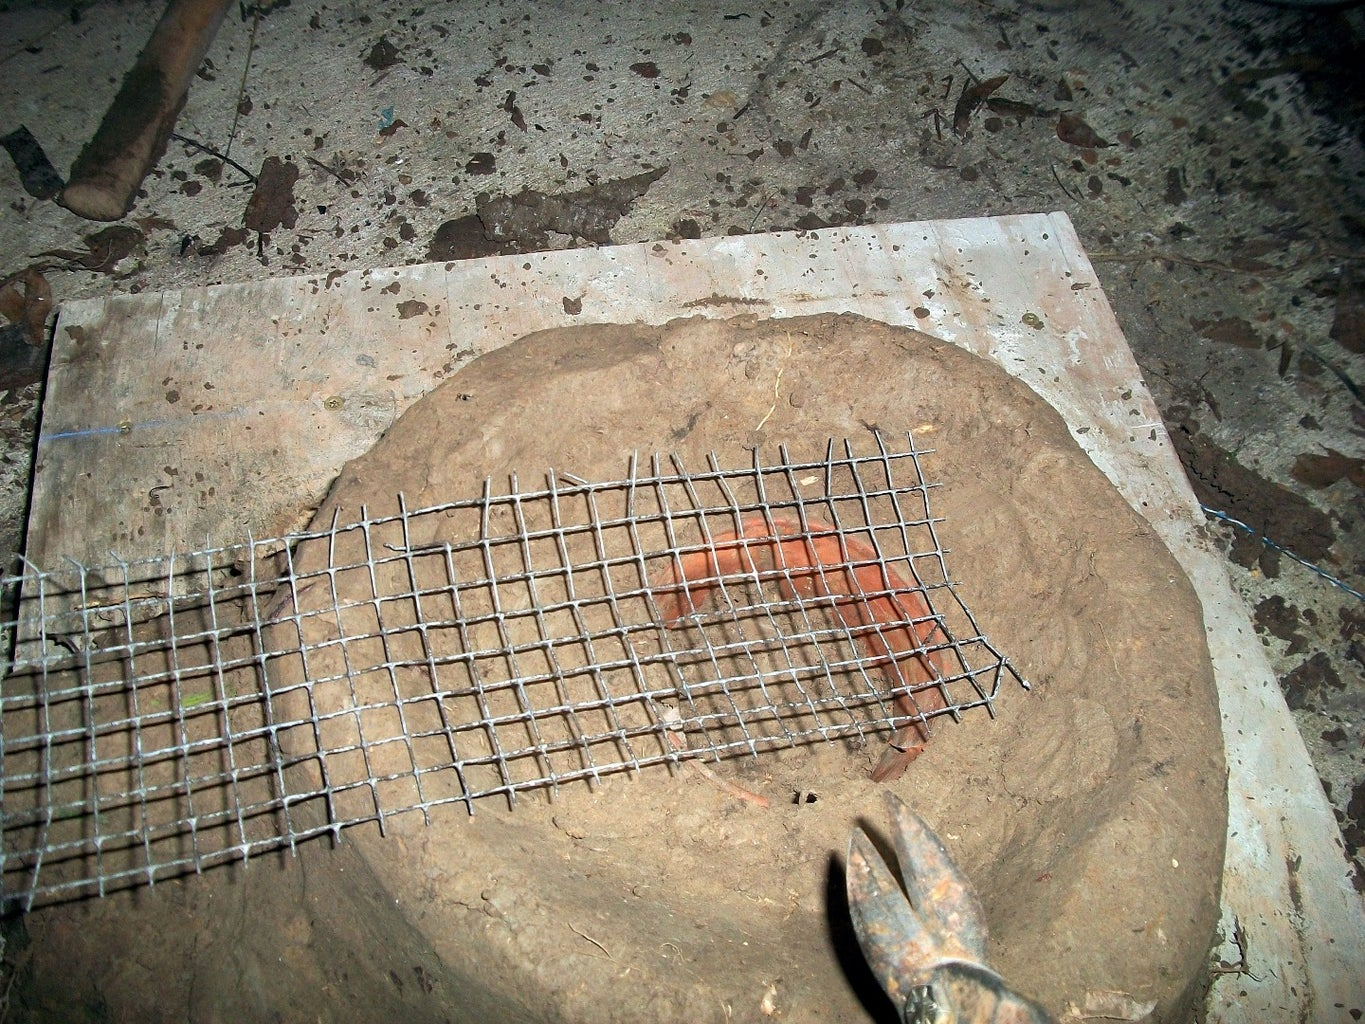 Cleaning Up the Surface and Making a Fire Grate